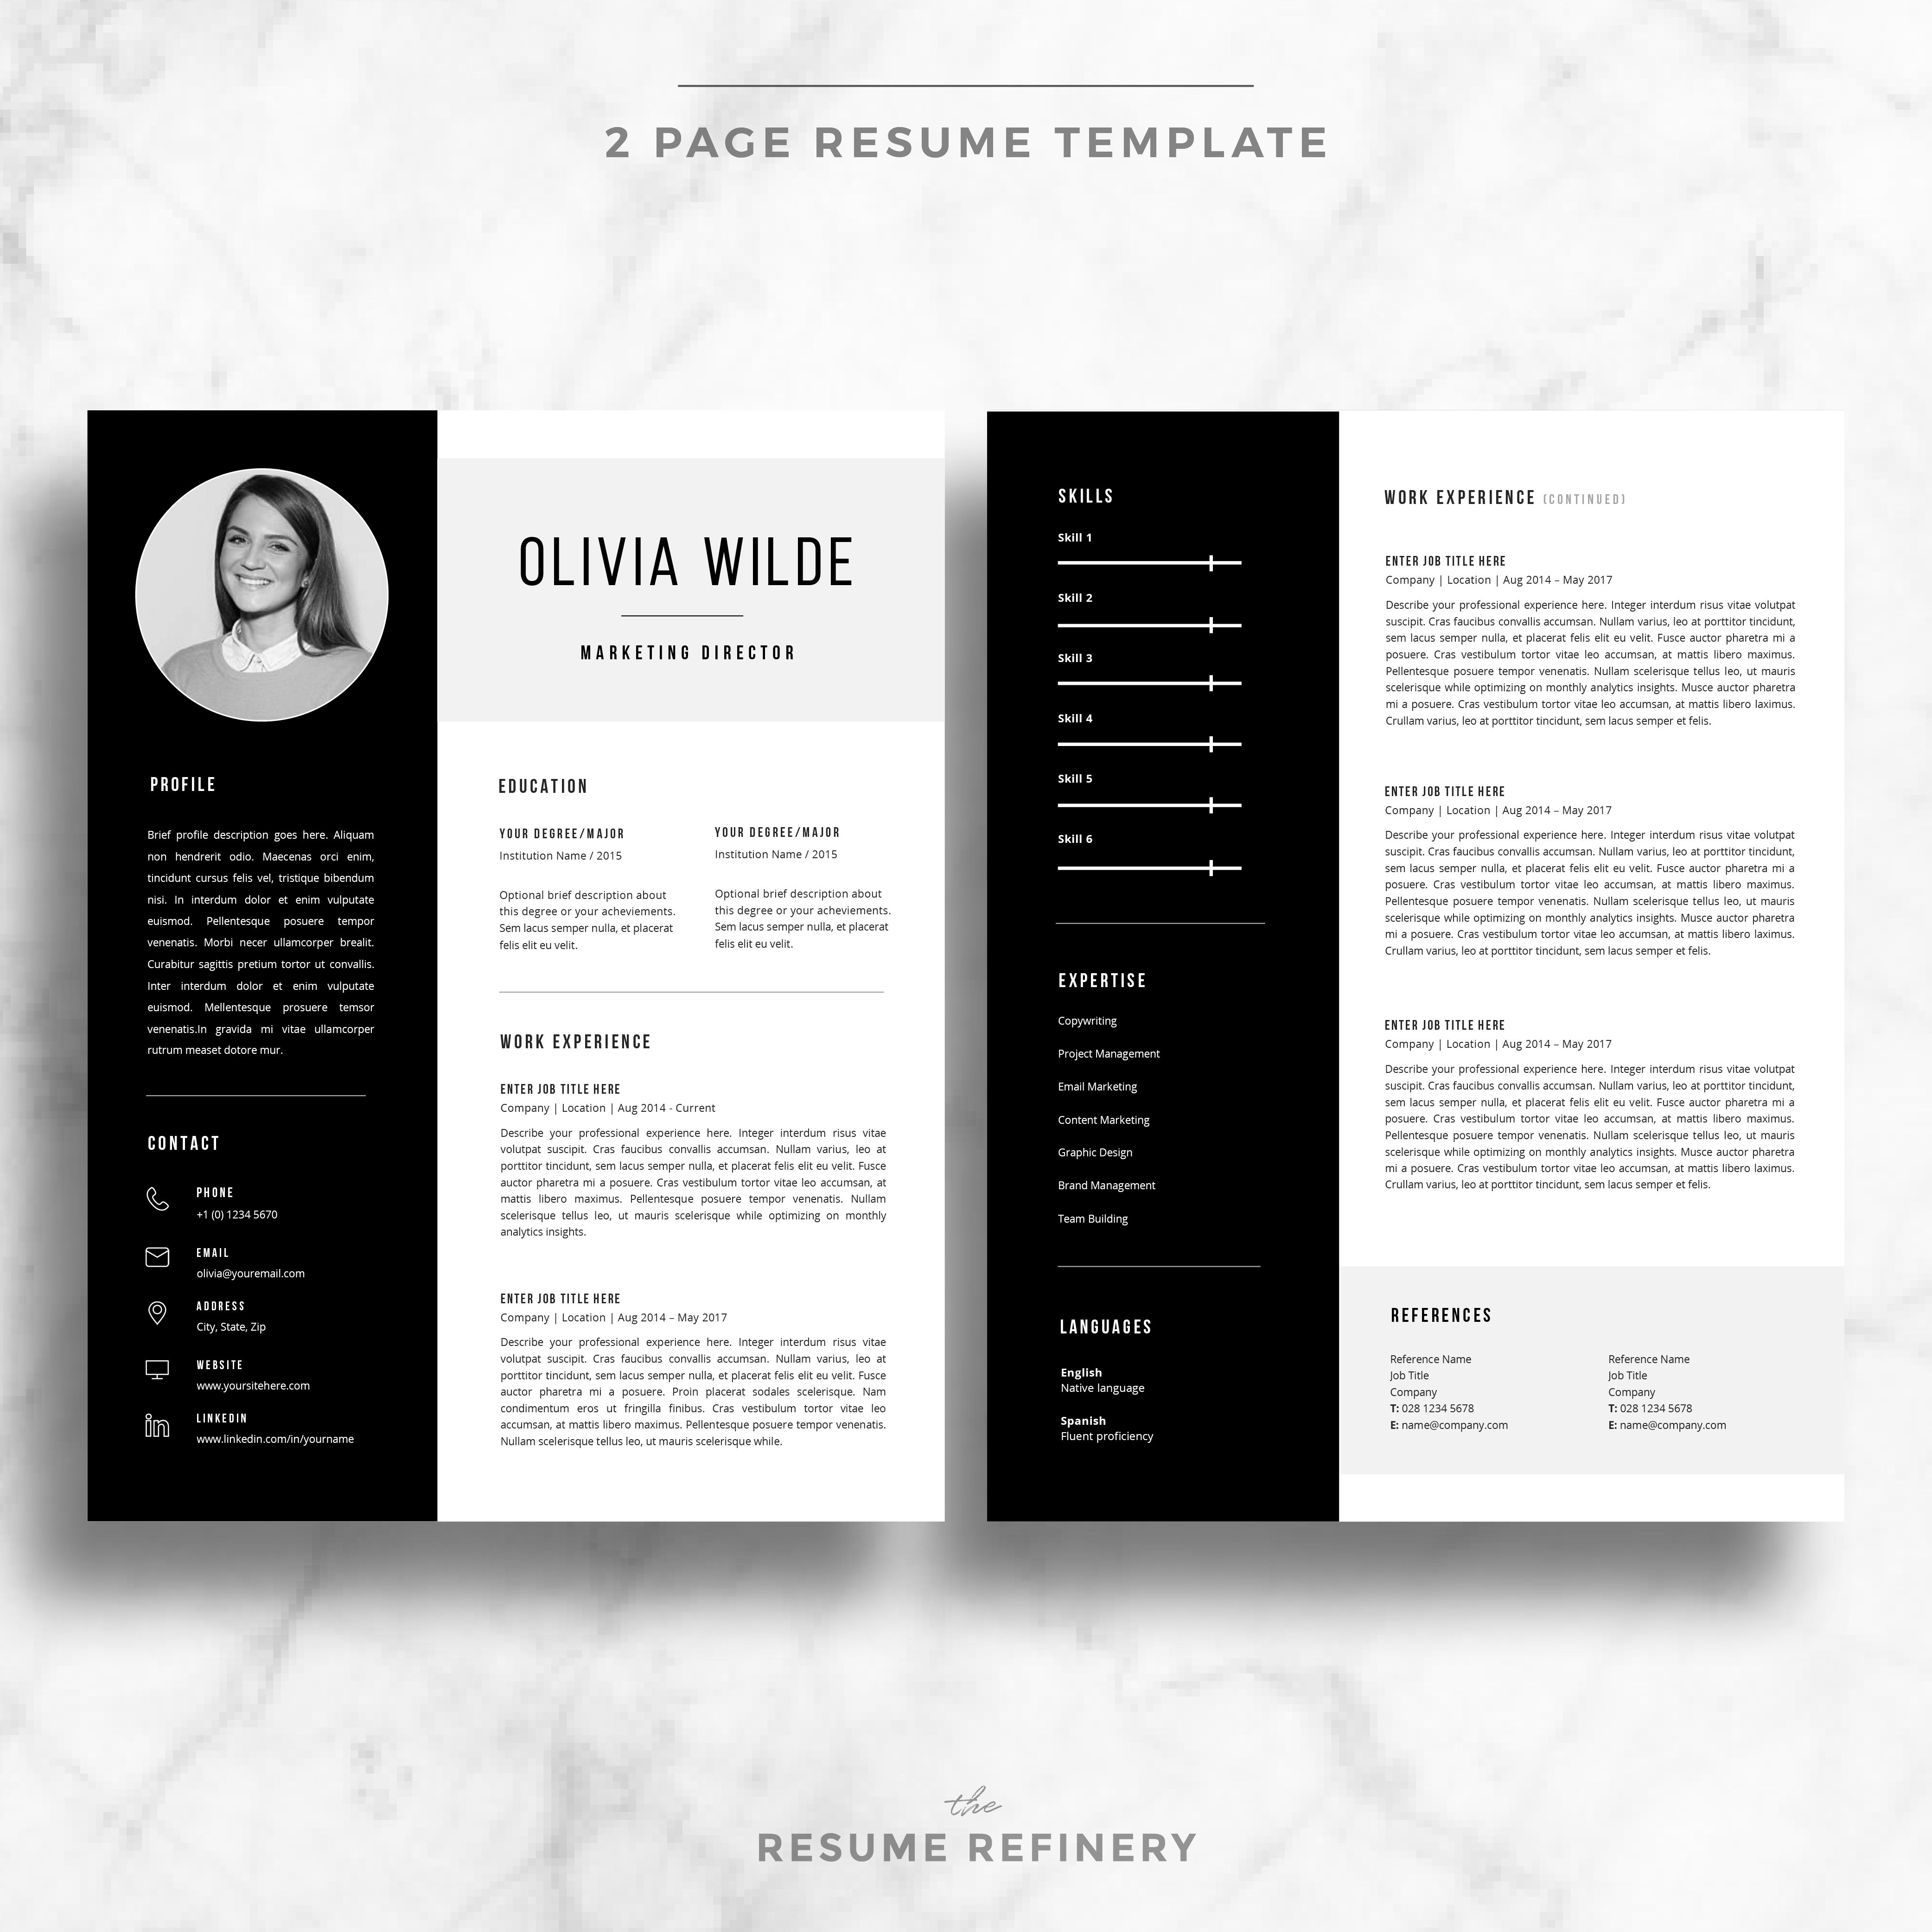 Modern 2 Page Resume Cover Letter Template For Word Bonus